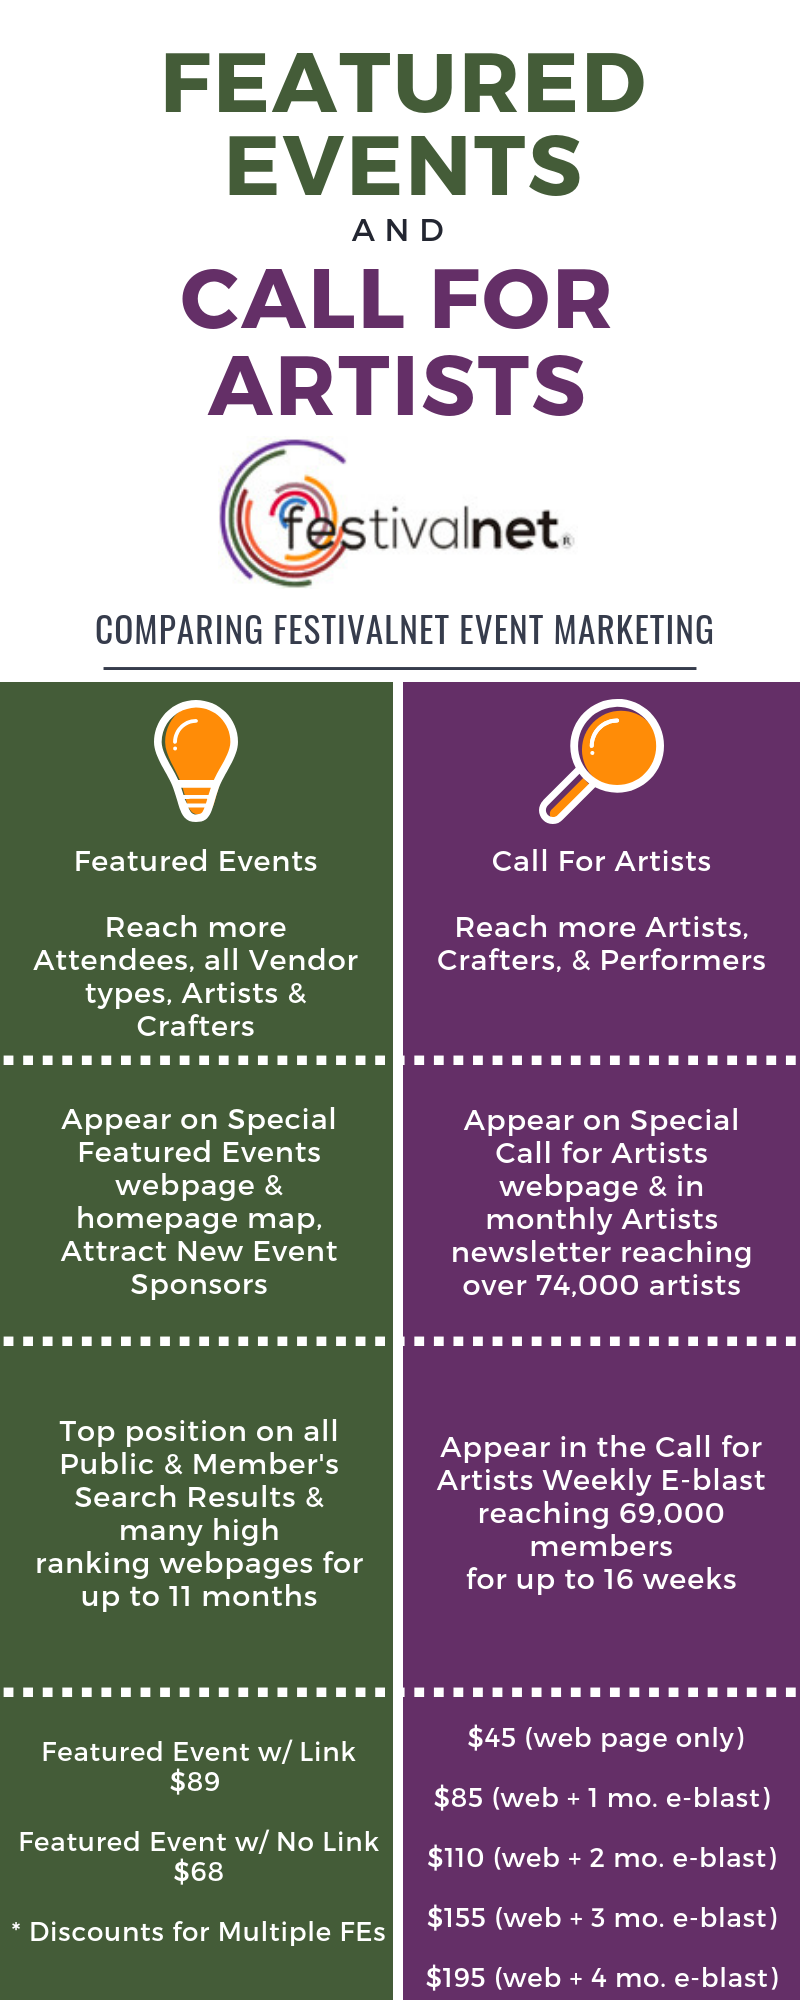 Featured Events and Call for Artists Infographic